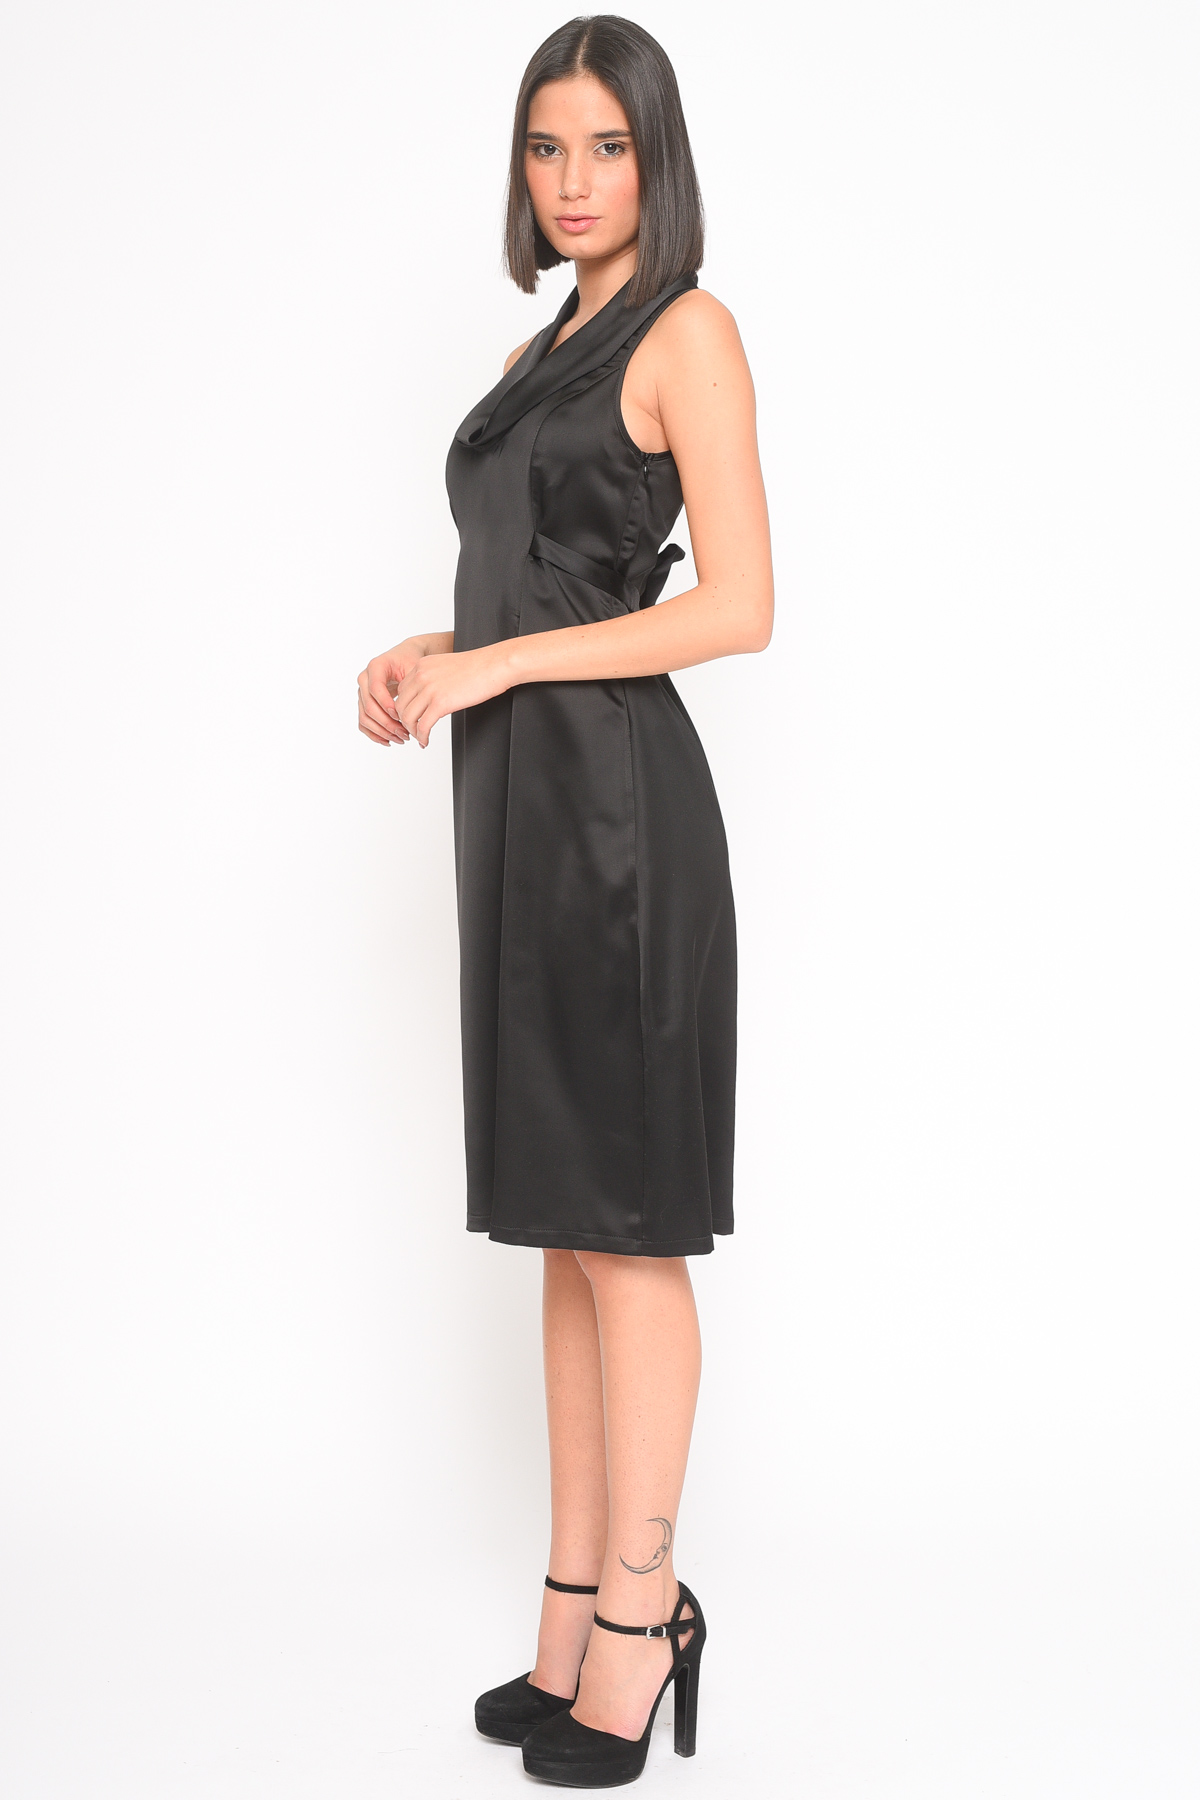 ABITO SMANICATO IN RASO for women - BLACK - Paquito Pronto Moda Shop Online